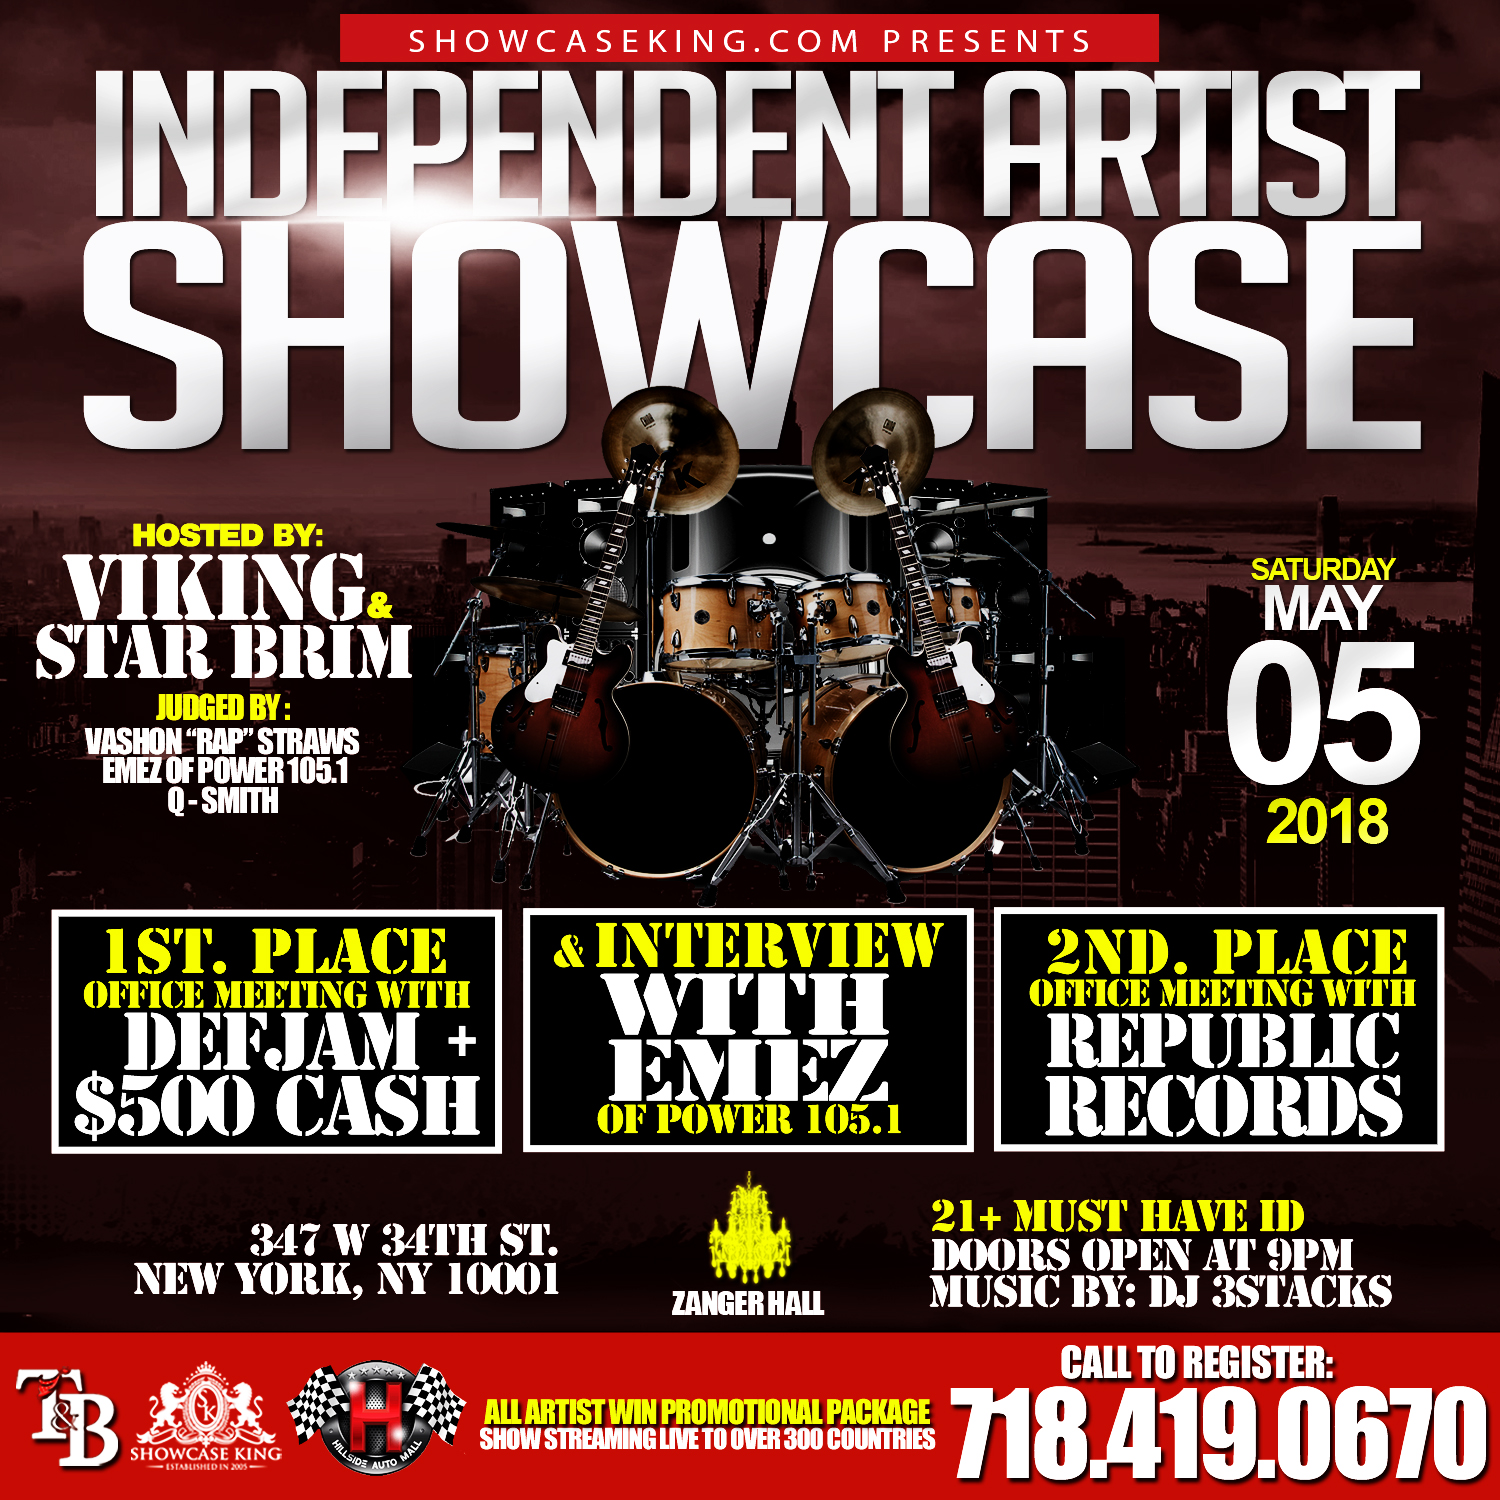 showcase king inc in association with tb management presents the independent artist showcase going down saturday may 05 2018 at zanger hall 347 w